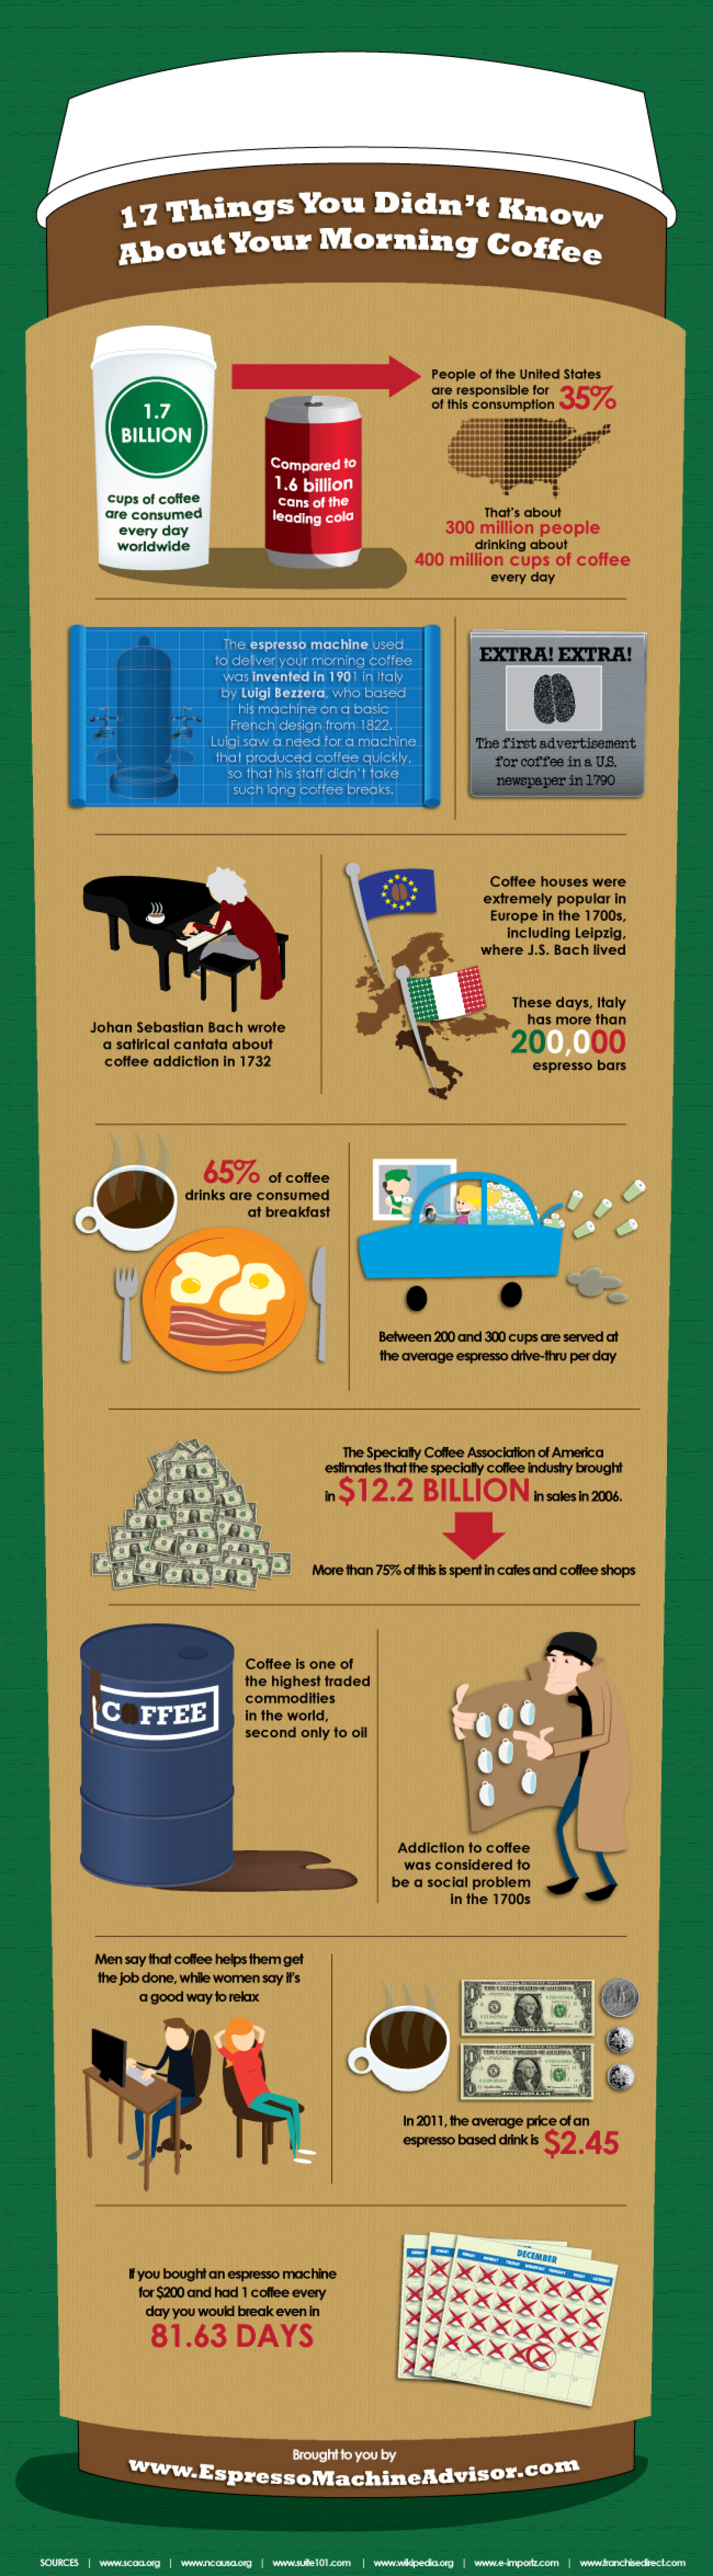 17 Things You Didn't Know About Coffee Infographic